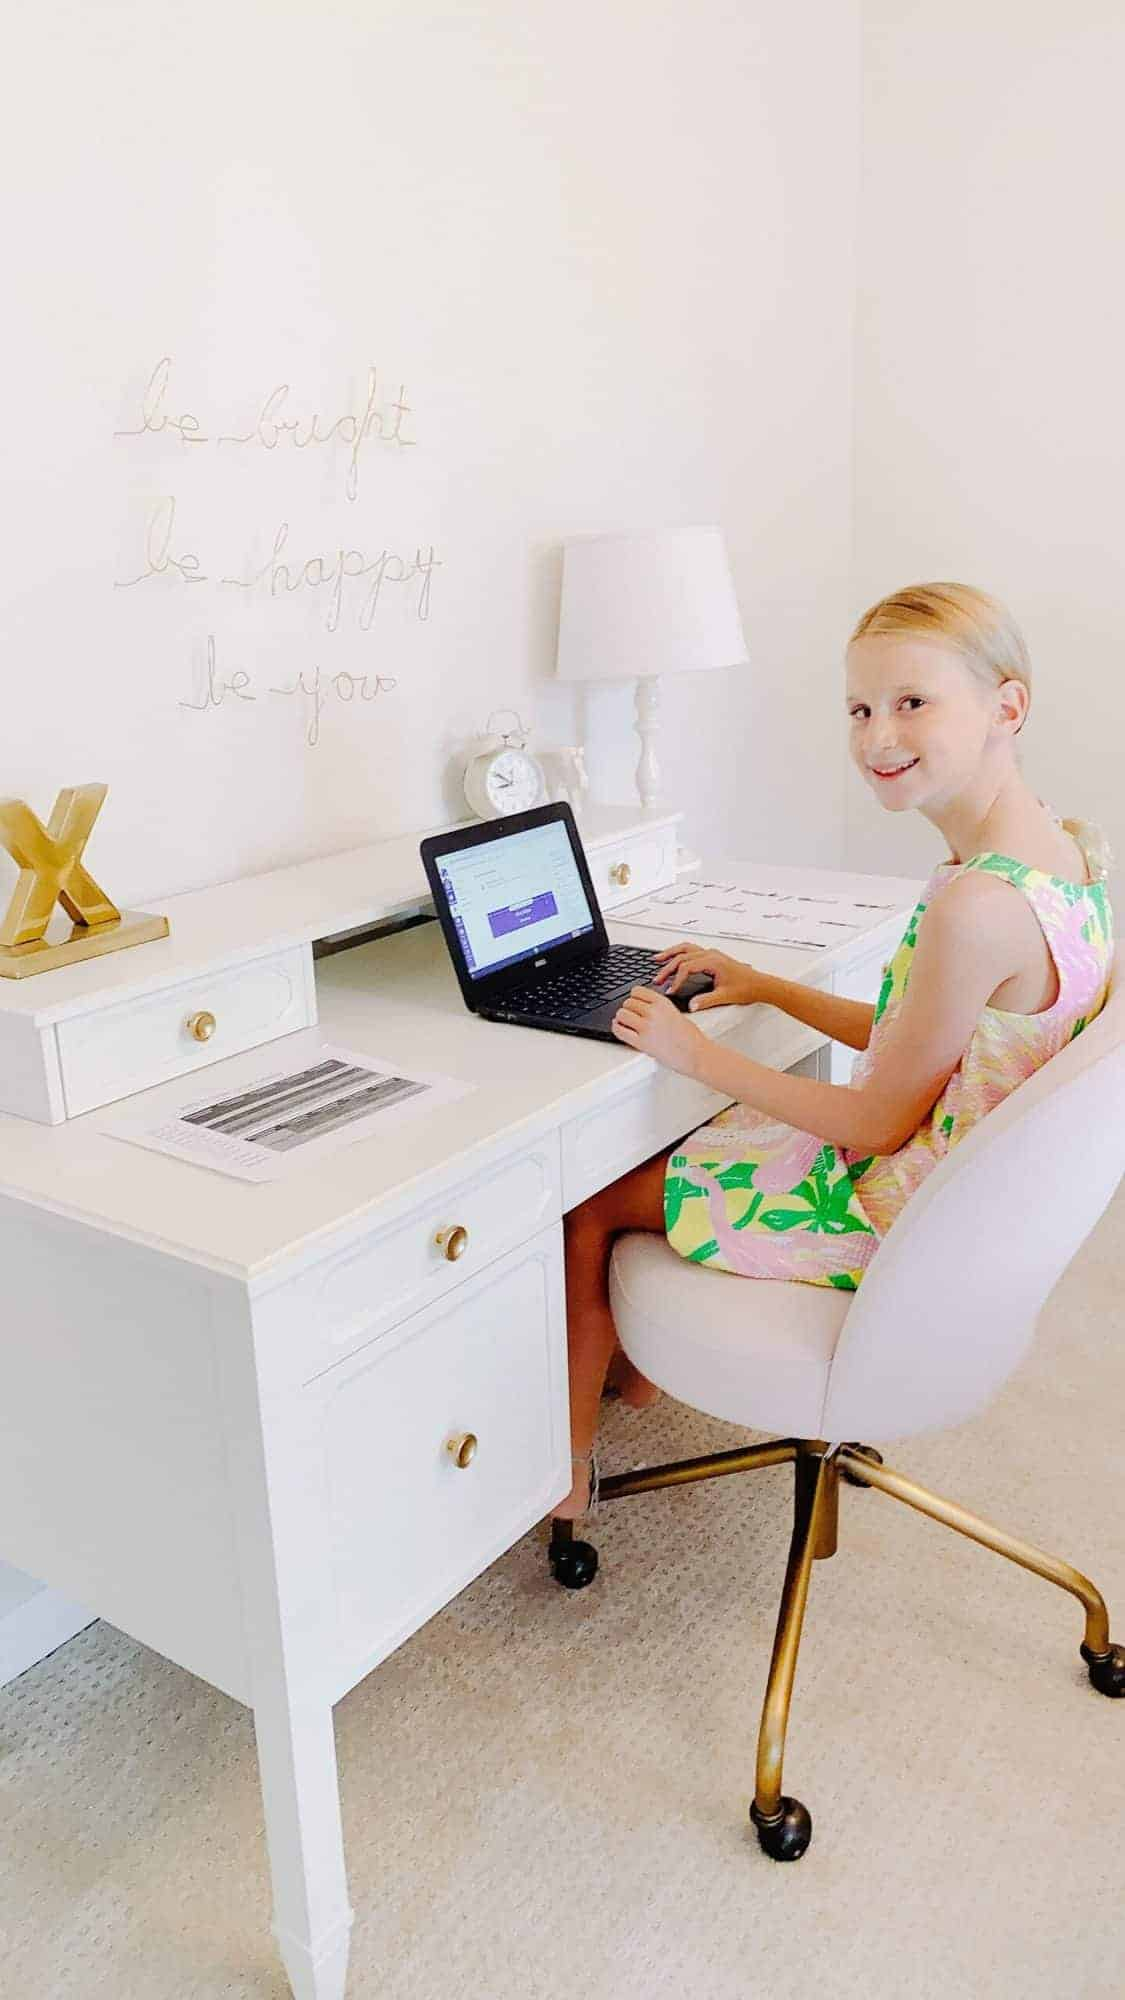 A young girl in a green and pink dress at a white girls desk in a white bedroom.